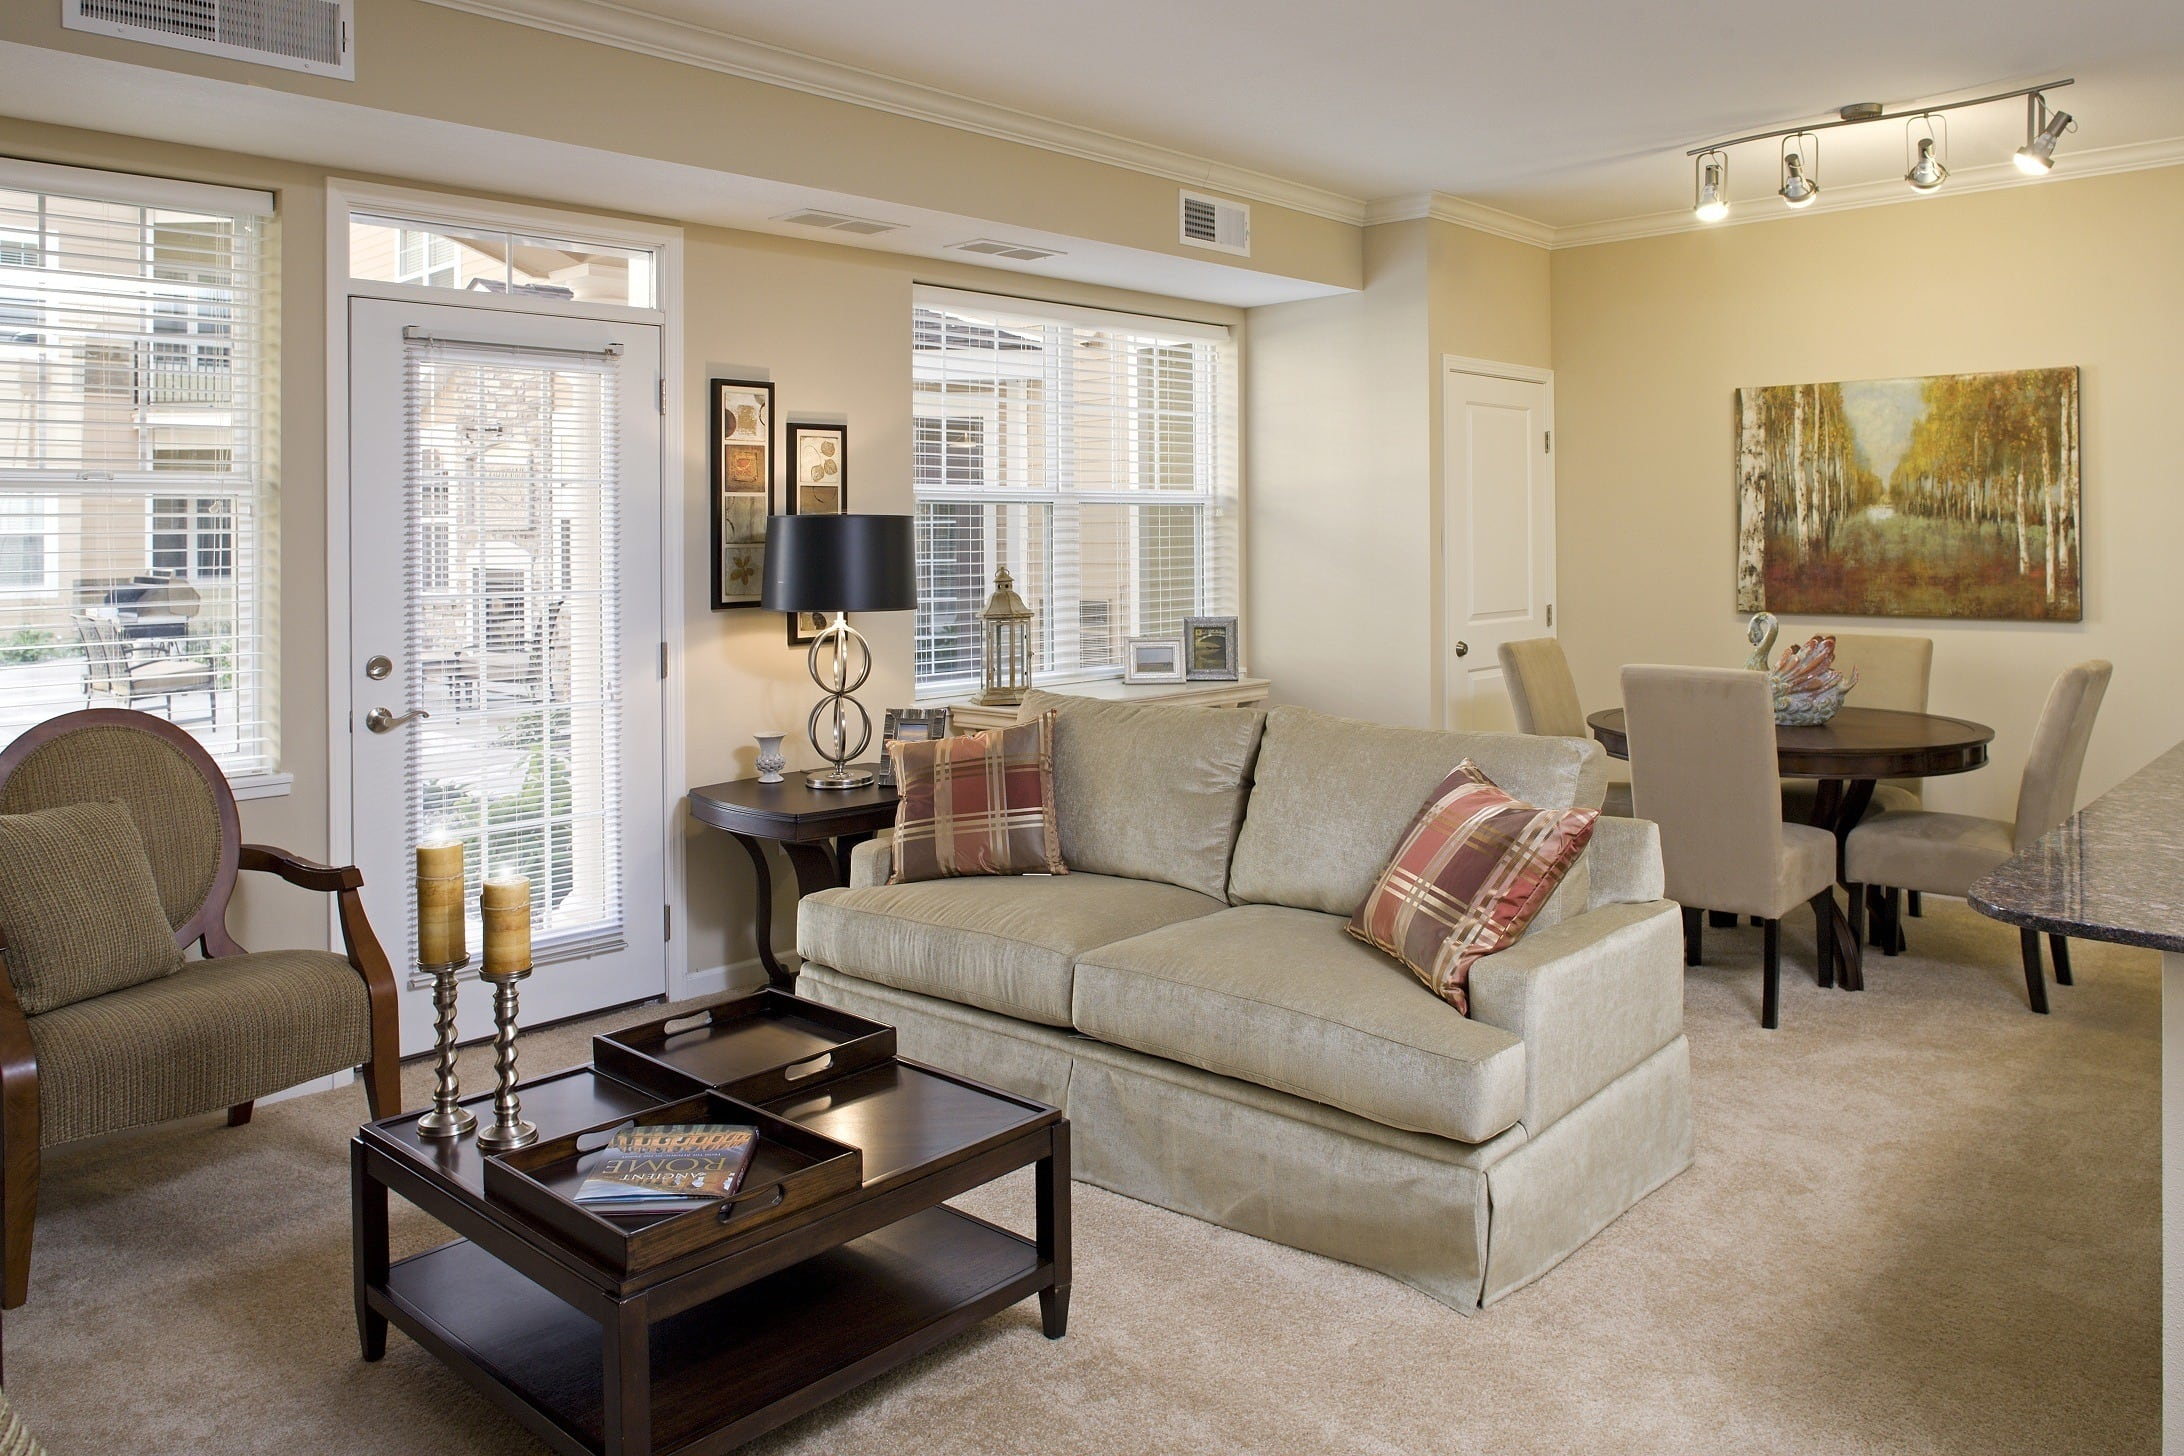 City Walk at Woodbury offers luxury living in Woodbury